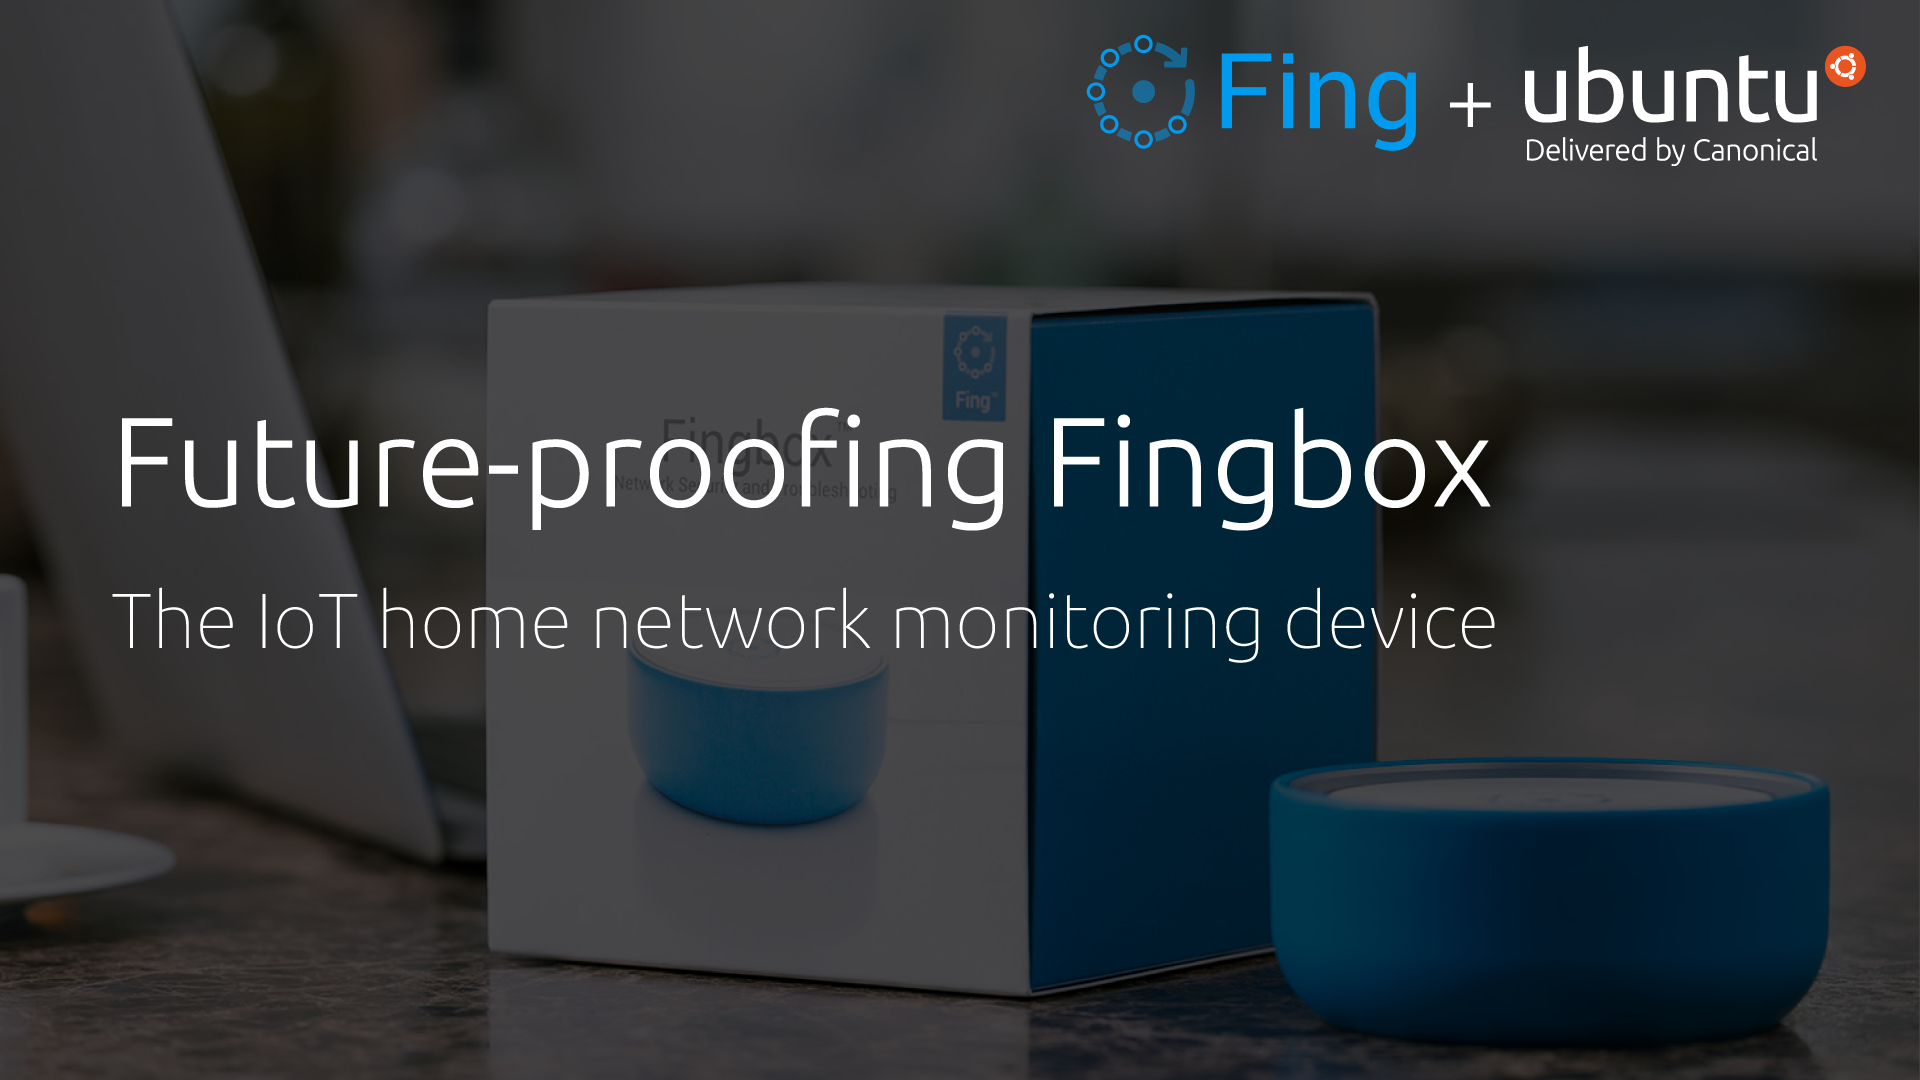 Fing: future-proofing Fingbox the IoT home network monitoring device